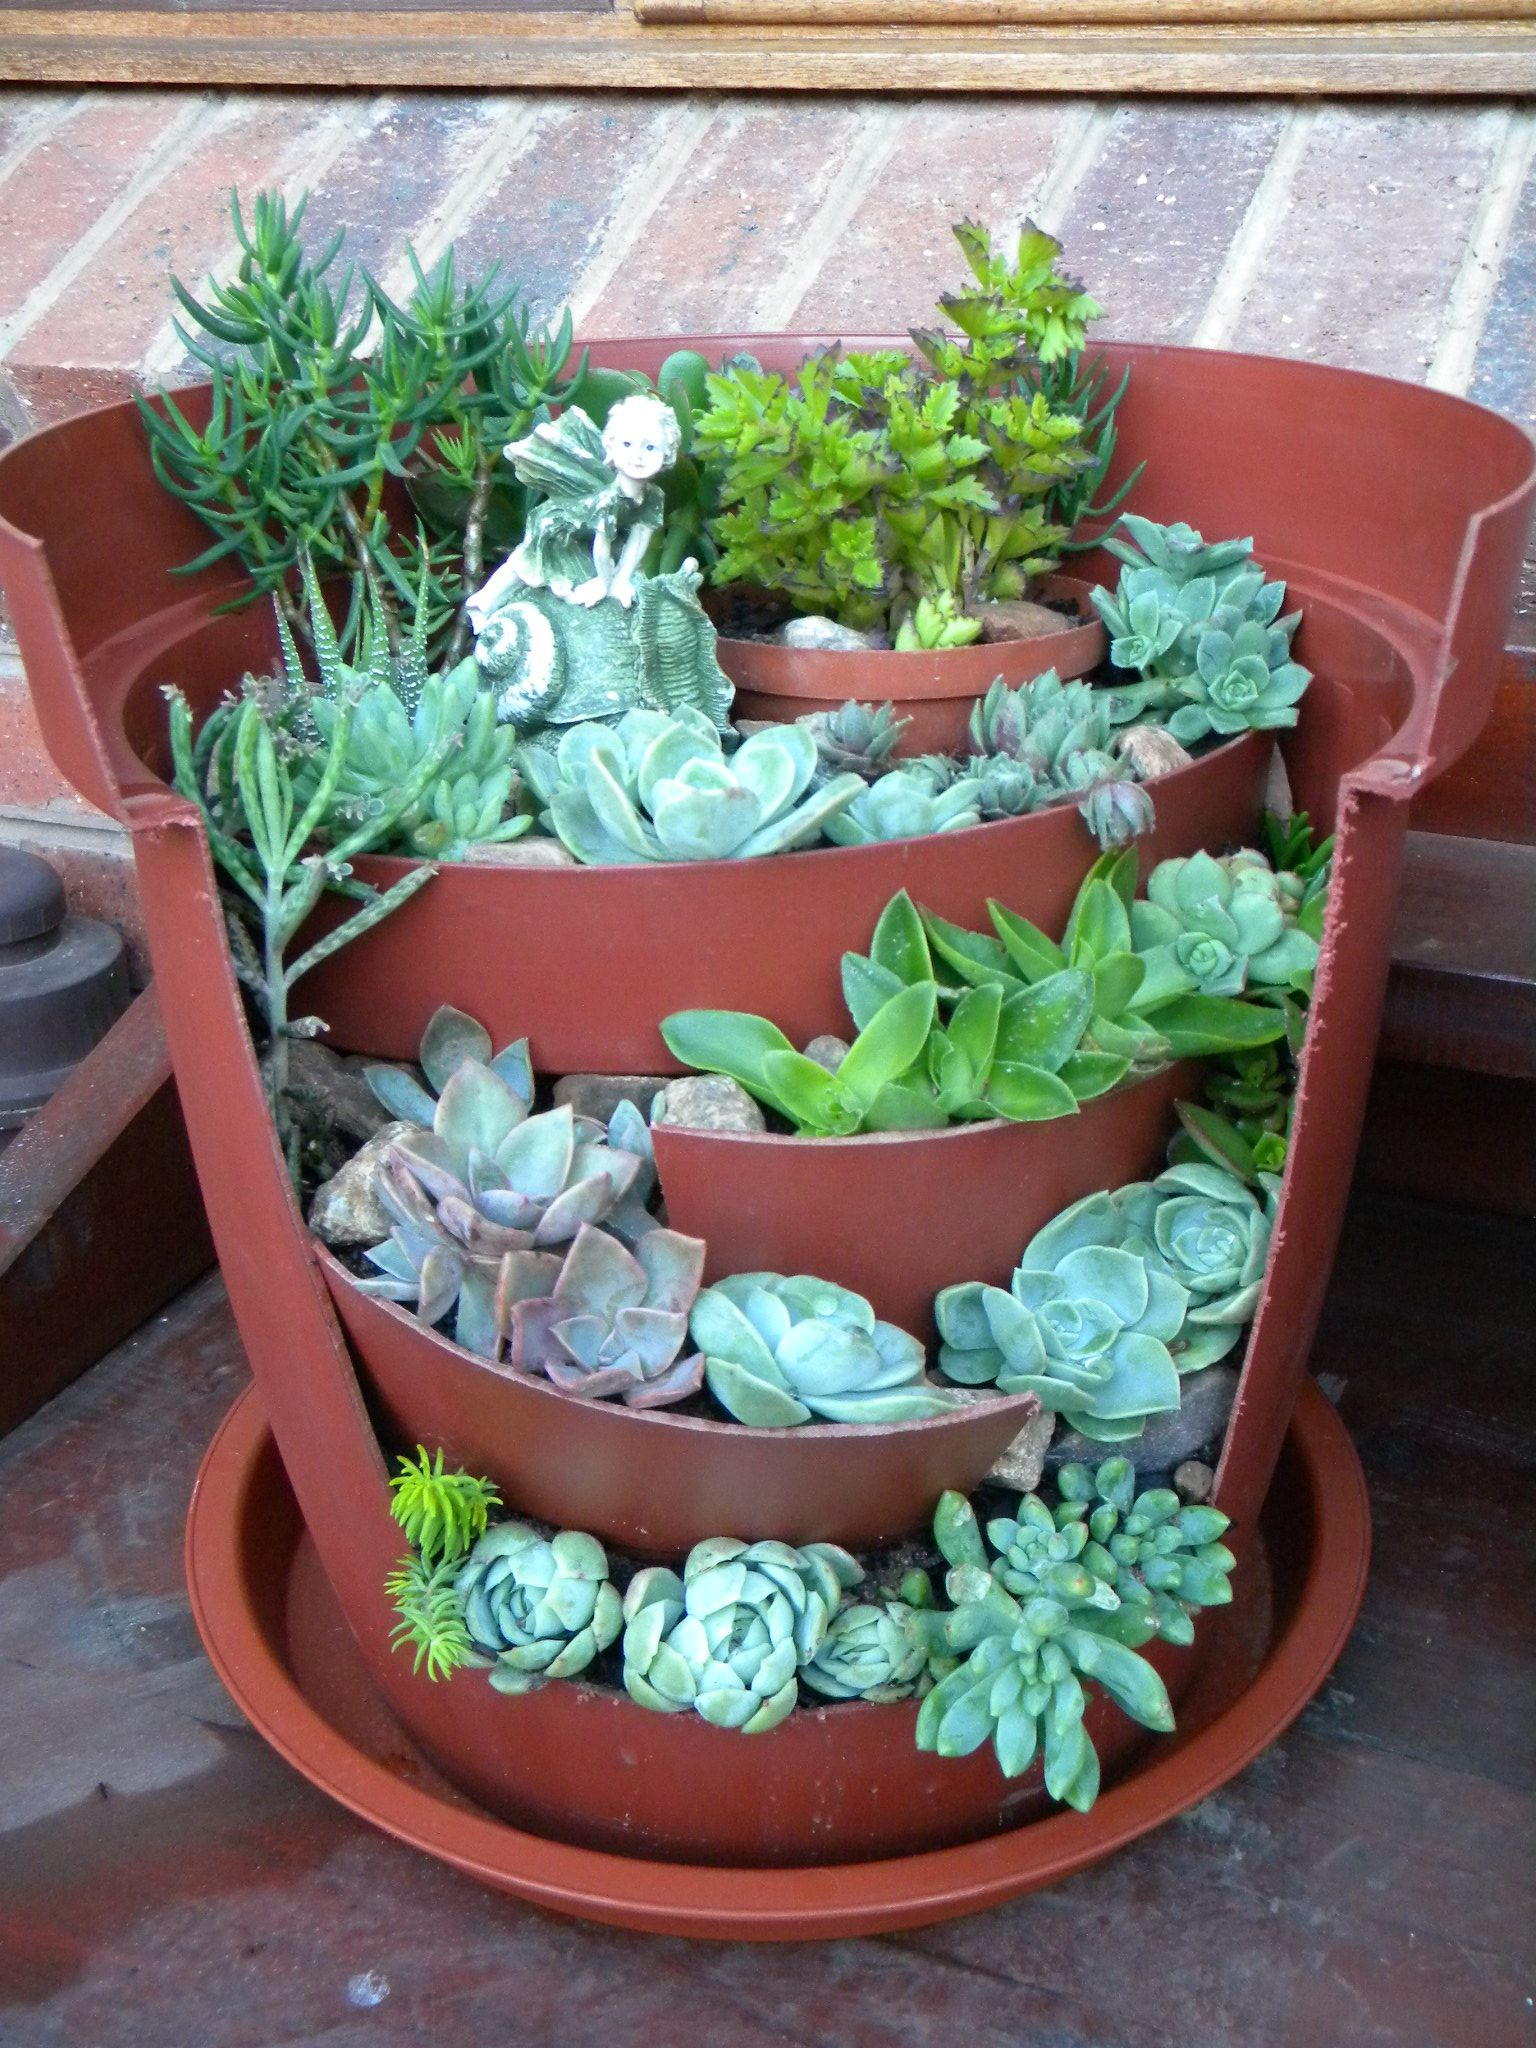 a tiered Succulent fairy garden, done in a plastic or ceramic flower pot.